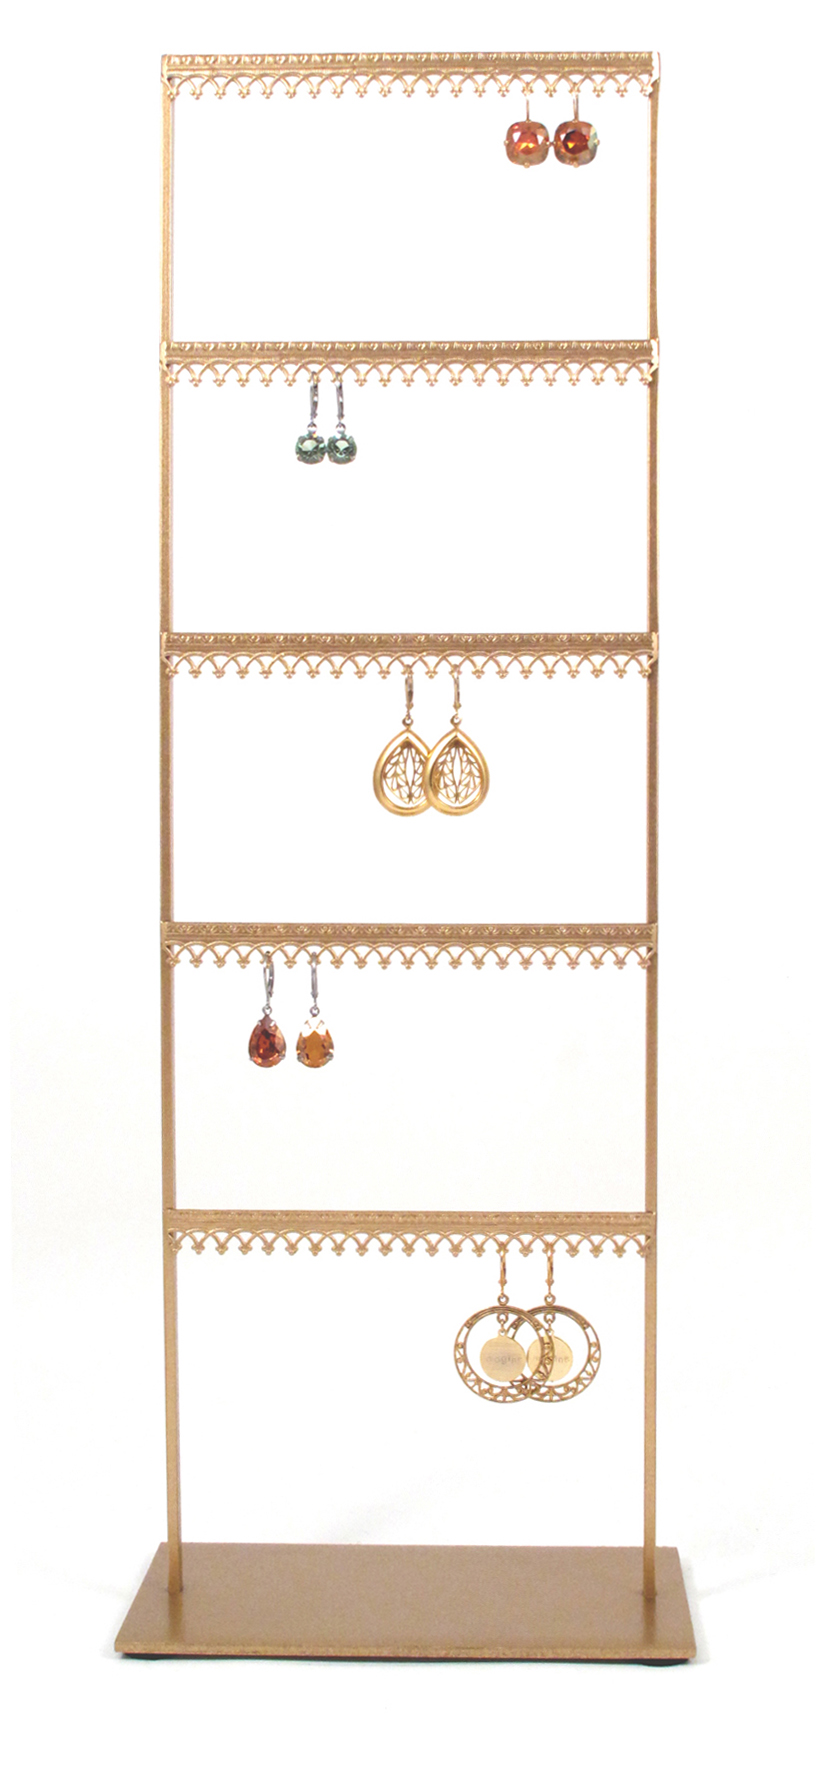 Royal Crown Display Jewelry Displays